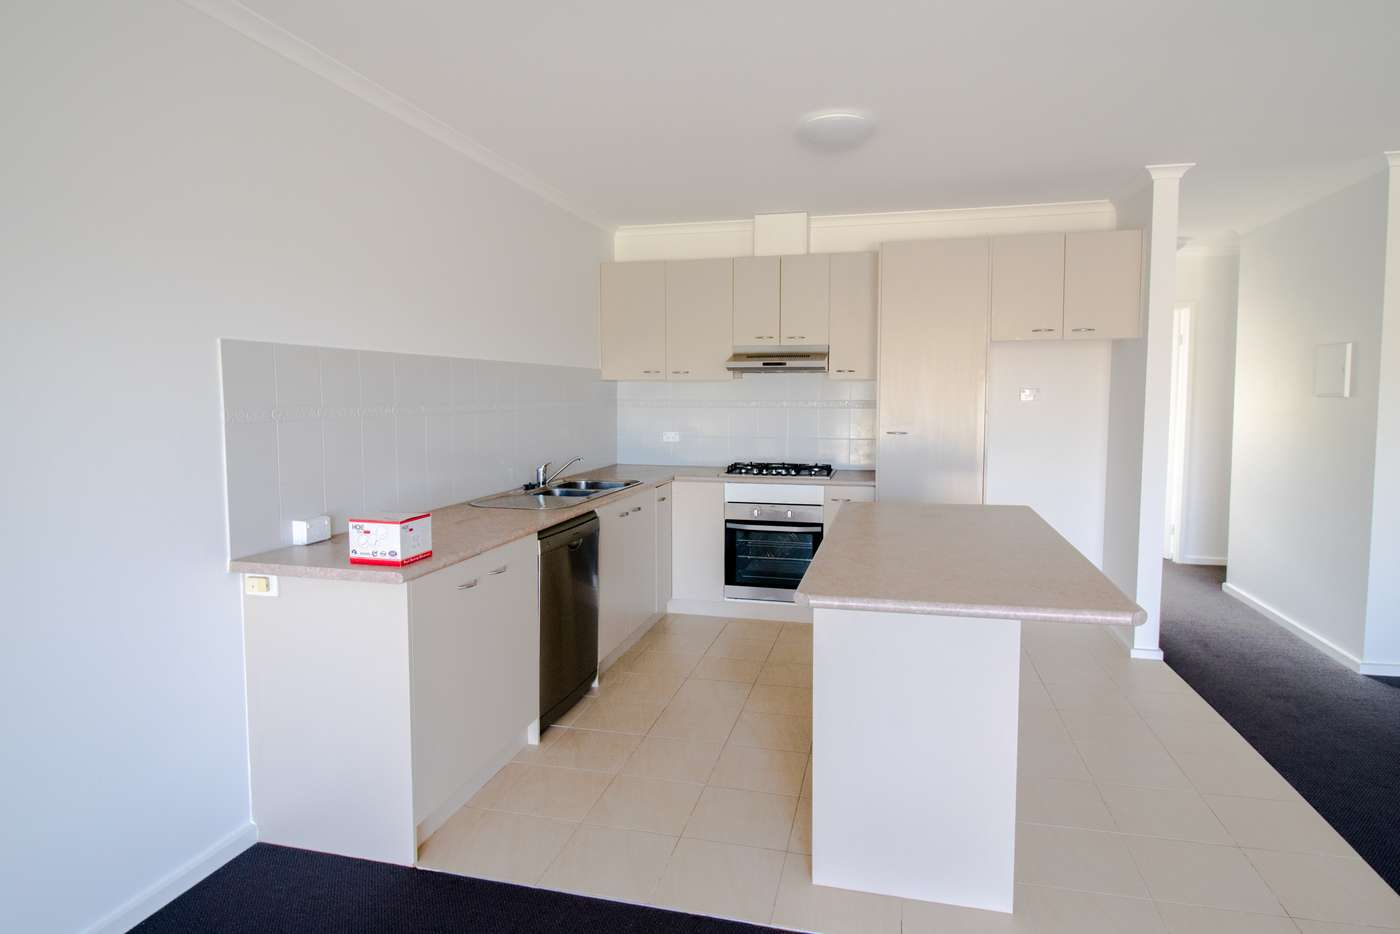 Main view of Homely apartment listing, 10/57-59 Anderson Street, Templestowe VIC 3106